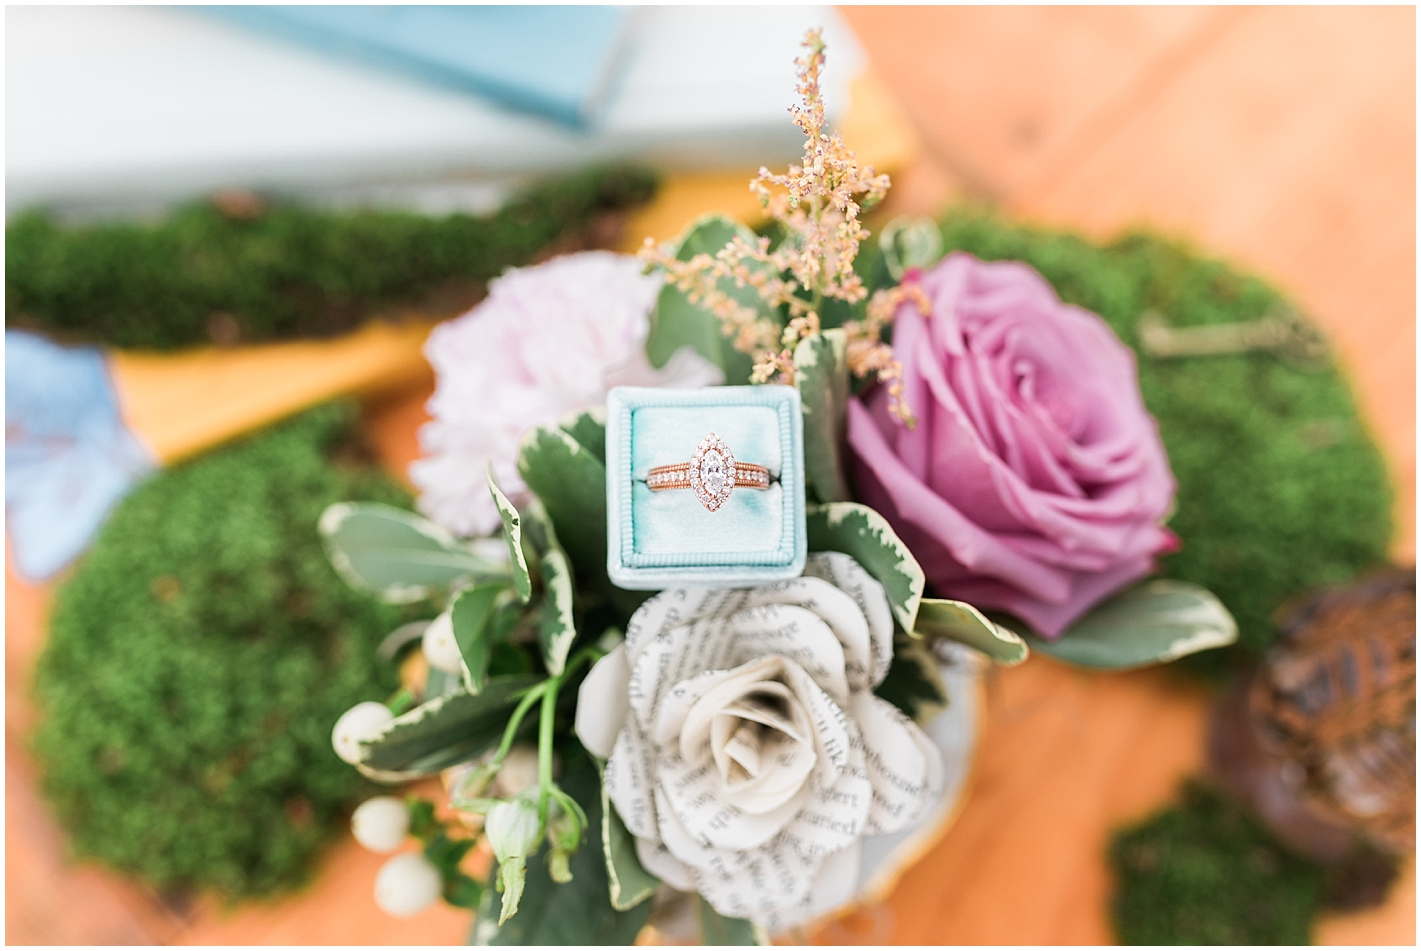 Alice and Wonderland Themed Wedding Photos by Alyssa Parker Photography